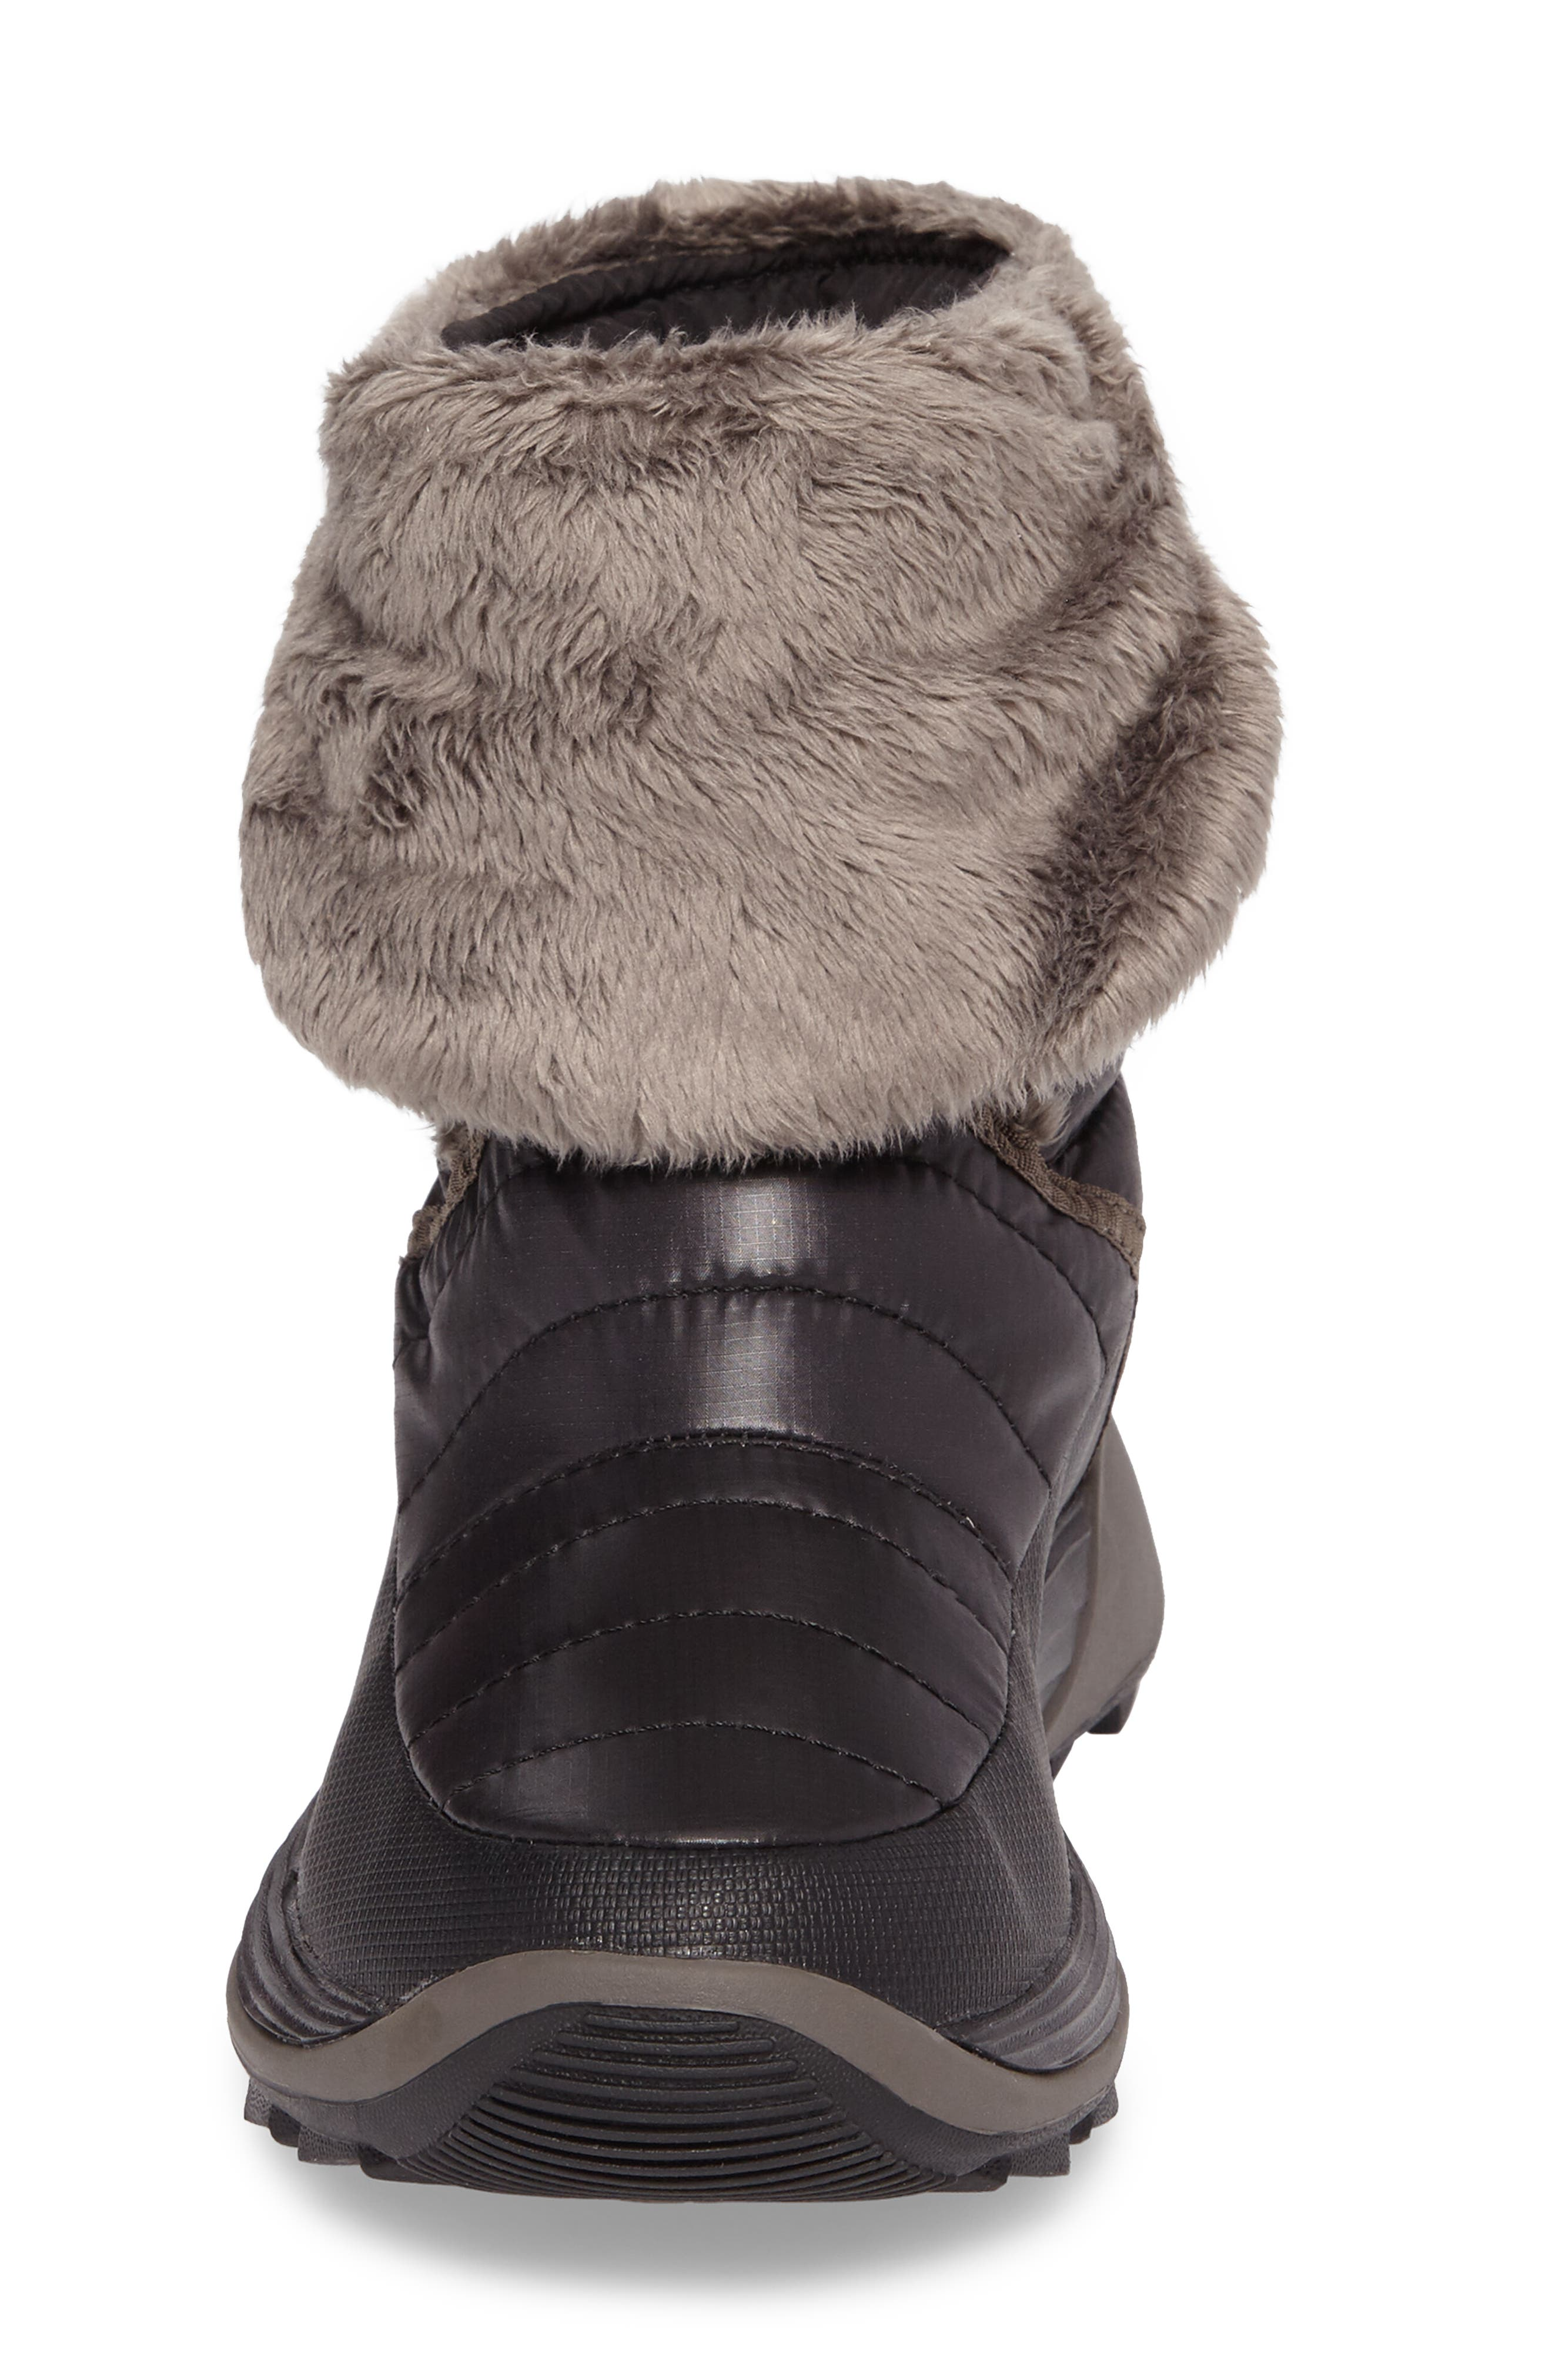 Amore II Water-Resistant Winter Boot,                             Alternate thumbnail 4, color,                             TNF BLACK/ DARK GULL GREY